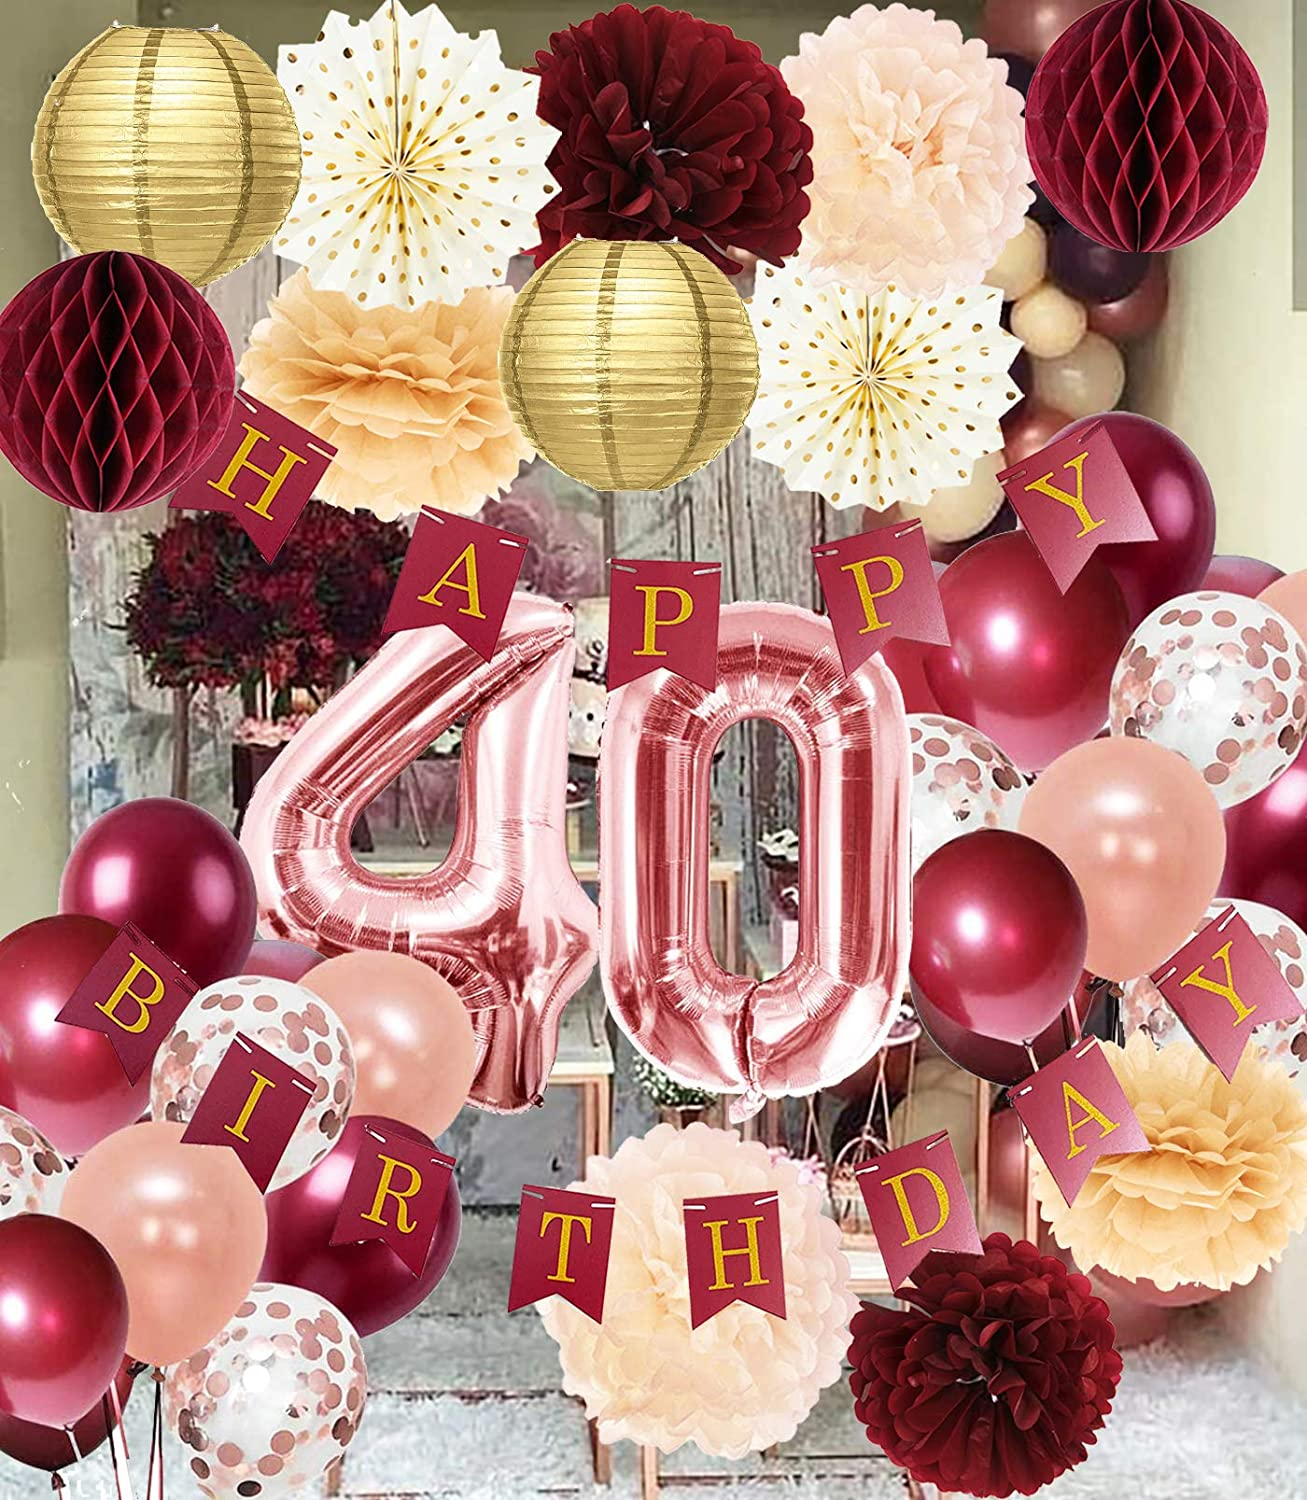 Amazon Com 40th Birthday Decorations For Women Burgundy Rose Gold Birthday Party Decorations Polka Dot Fans 40th Birthday Balloons Fall Burgundy Rose Gold 40 Birthday Decorations Autumn Toys Games